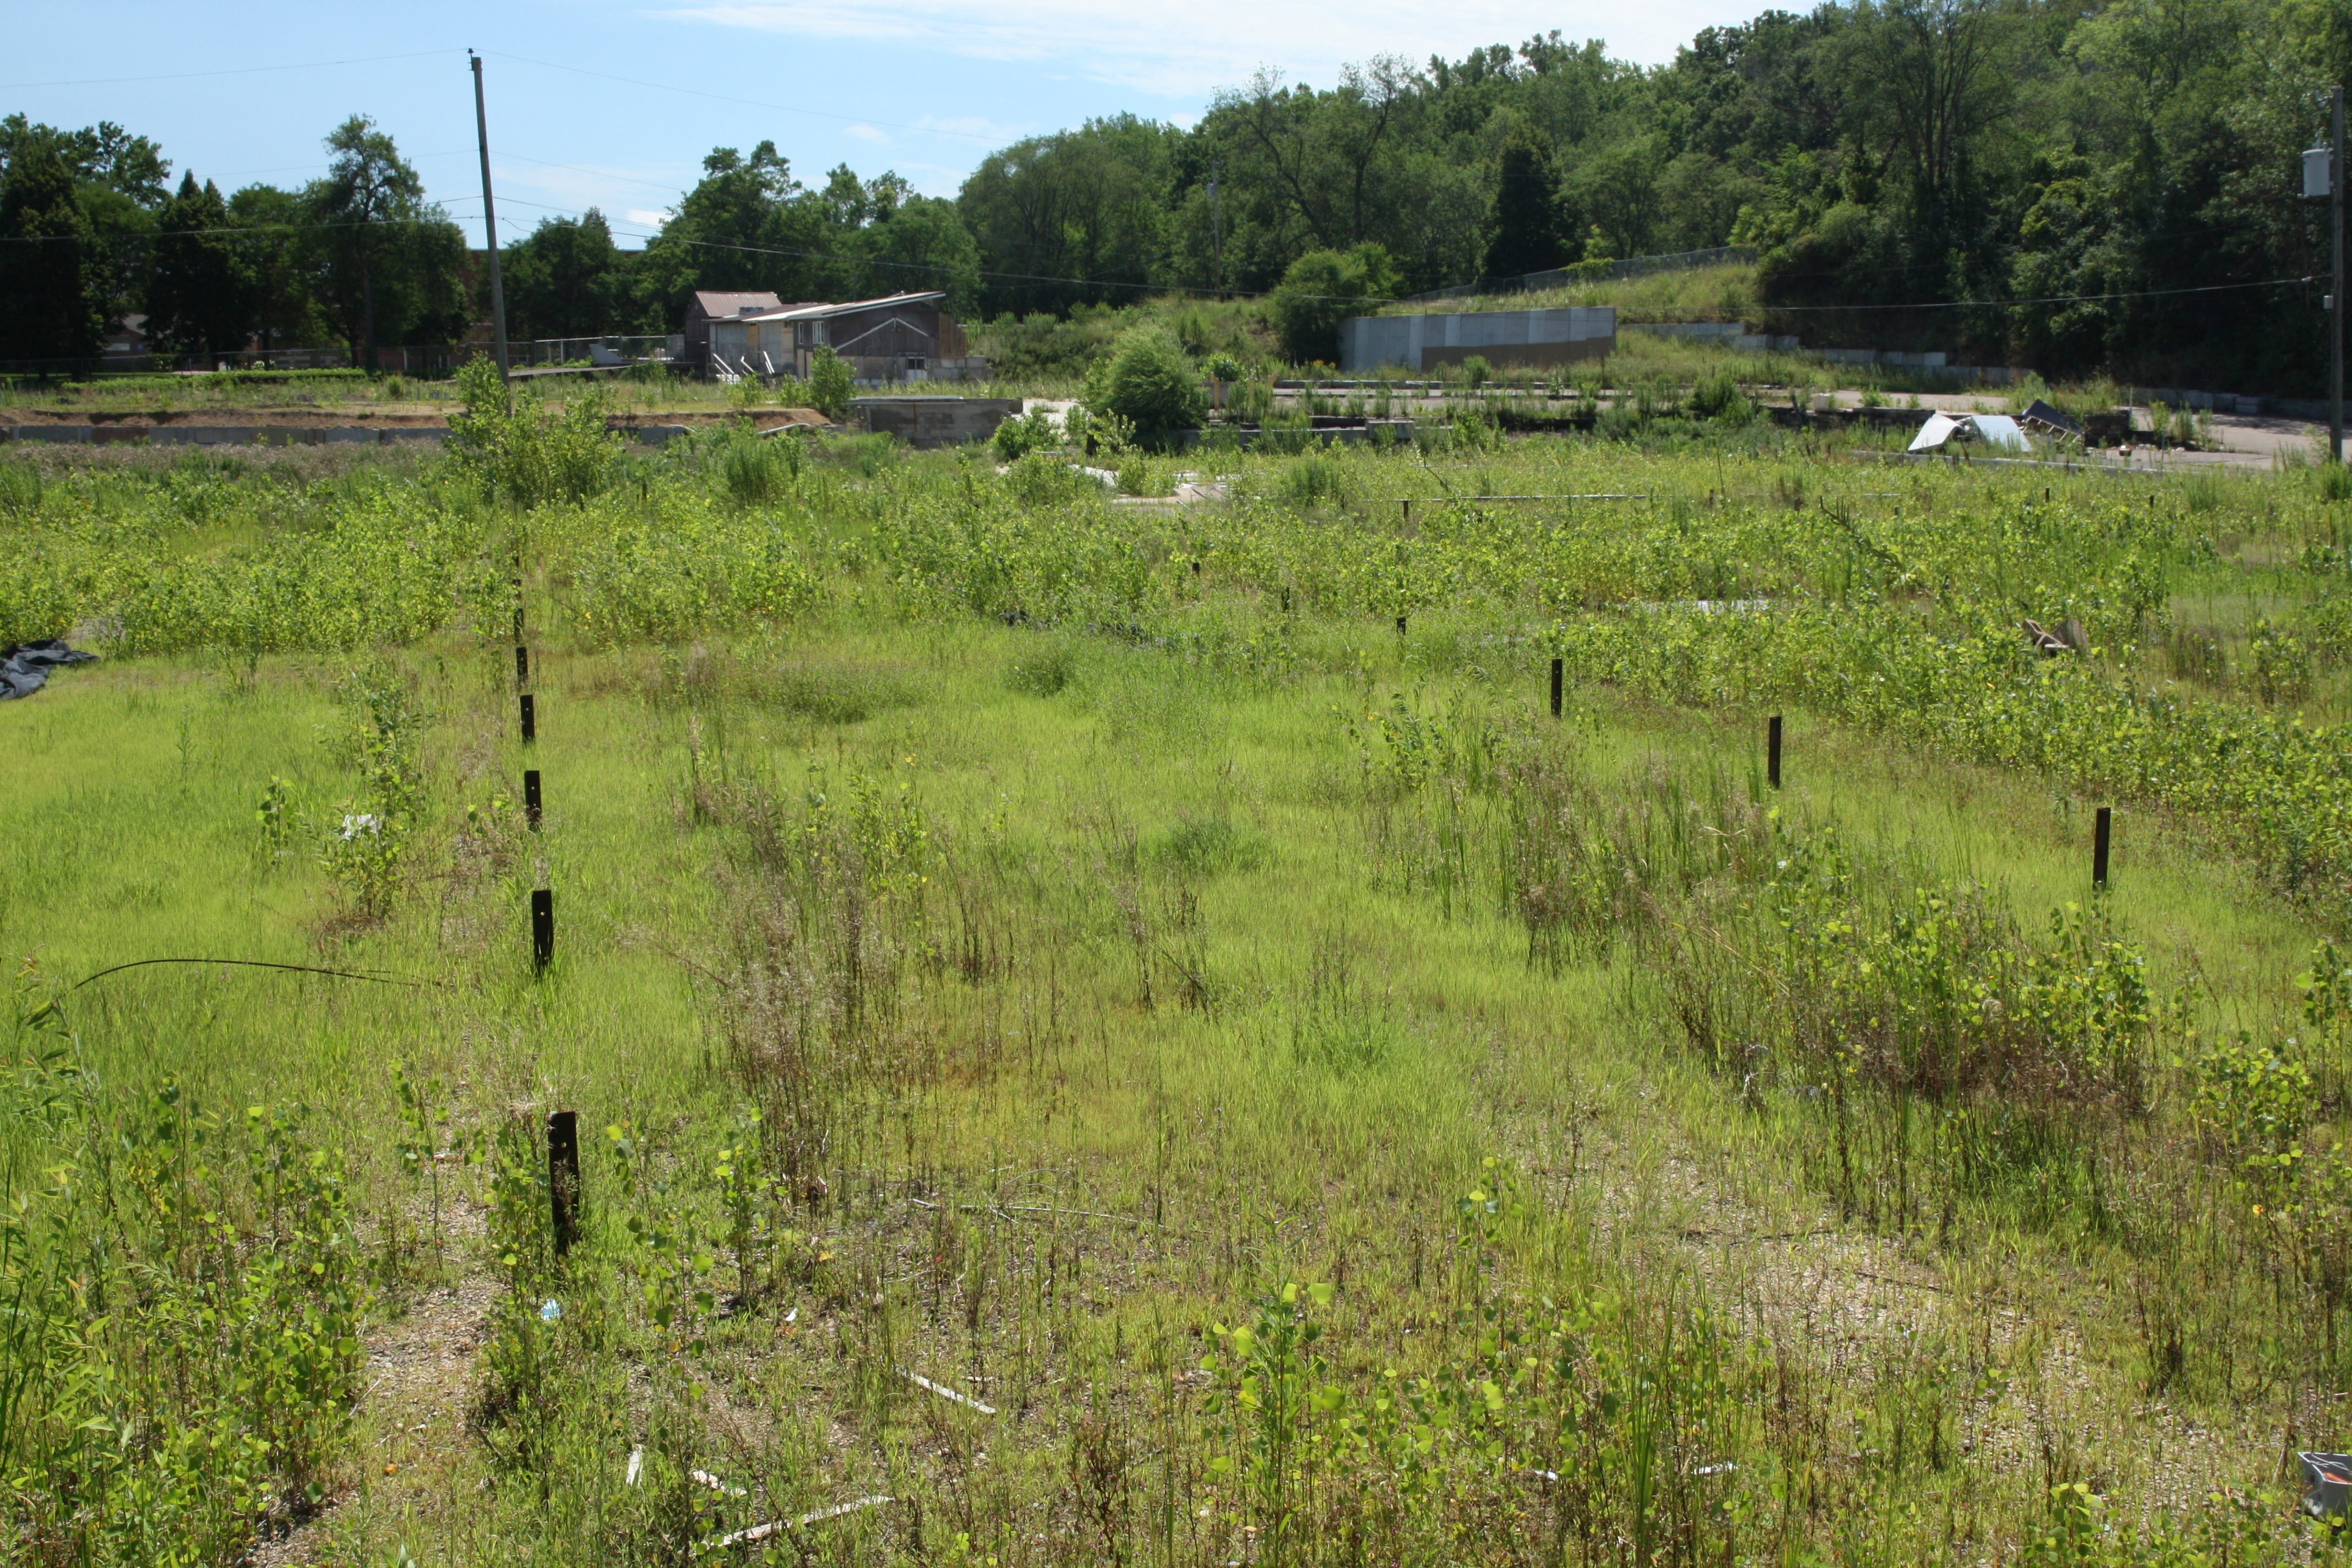 Additional fields and other buildings on the far south end of the Linder property.